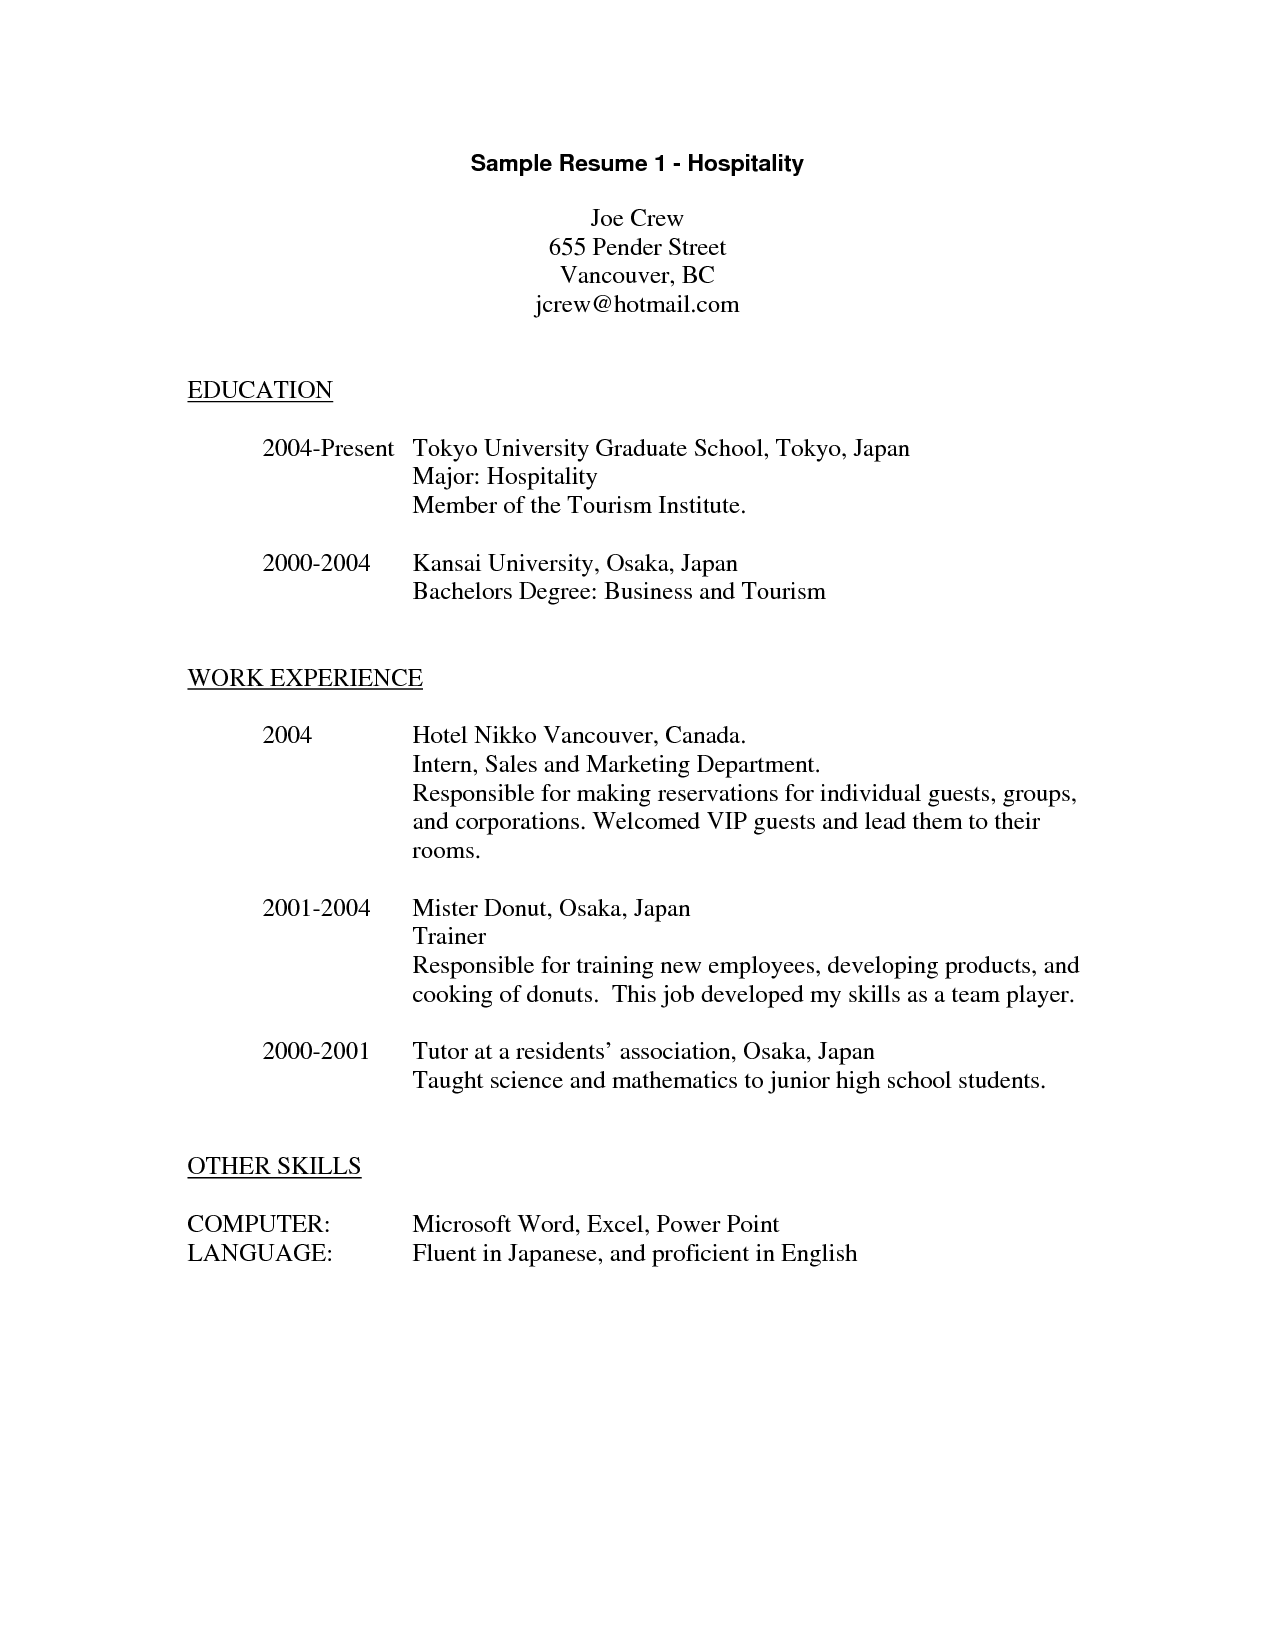 sample resume for hospitality industry sample resume for hospitality industry sample resume for hospitality jobs sample